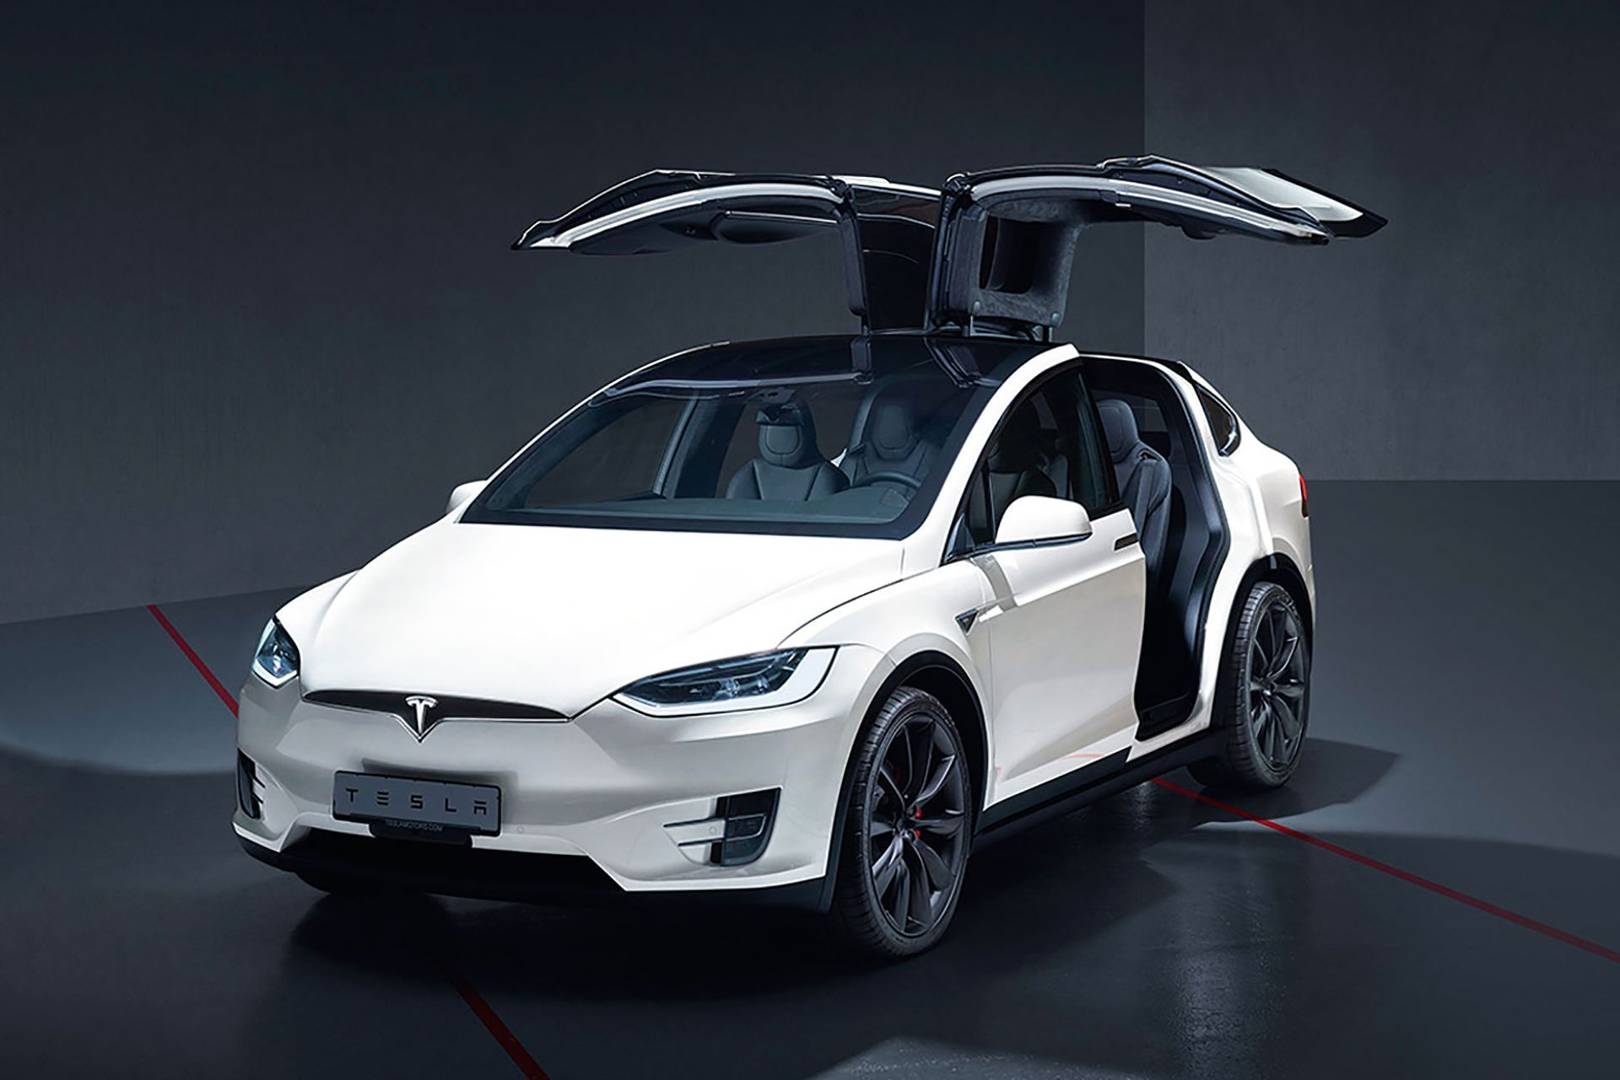 Tesla's car insurance move isn't just about cheaper premiums